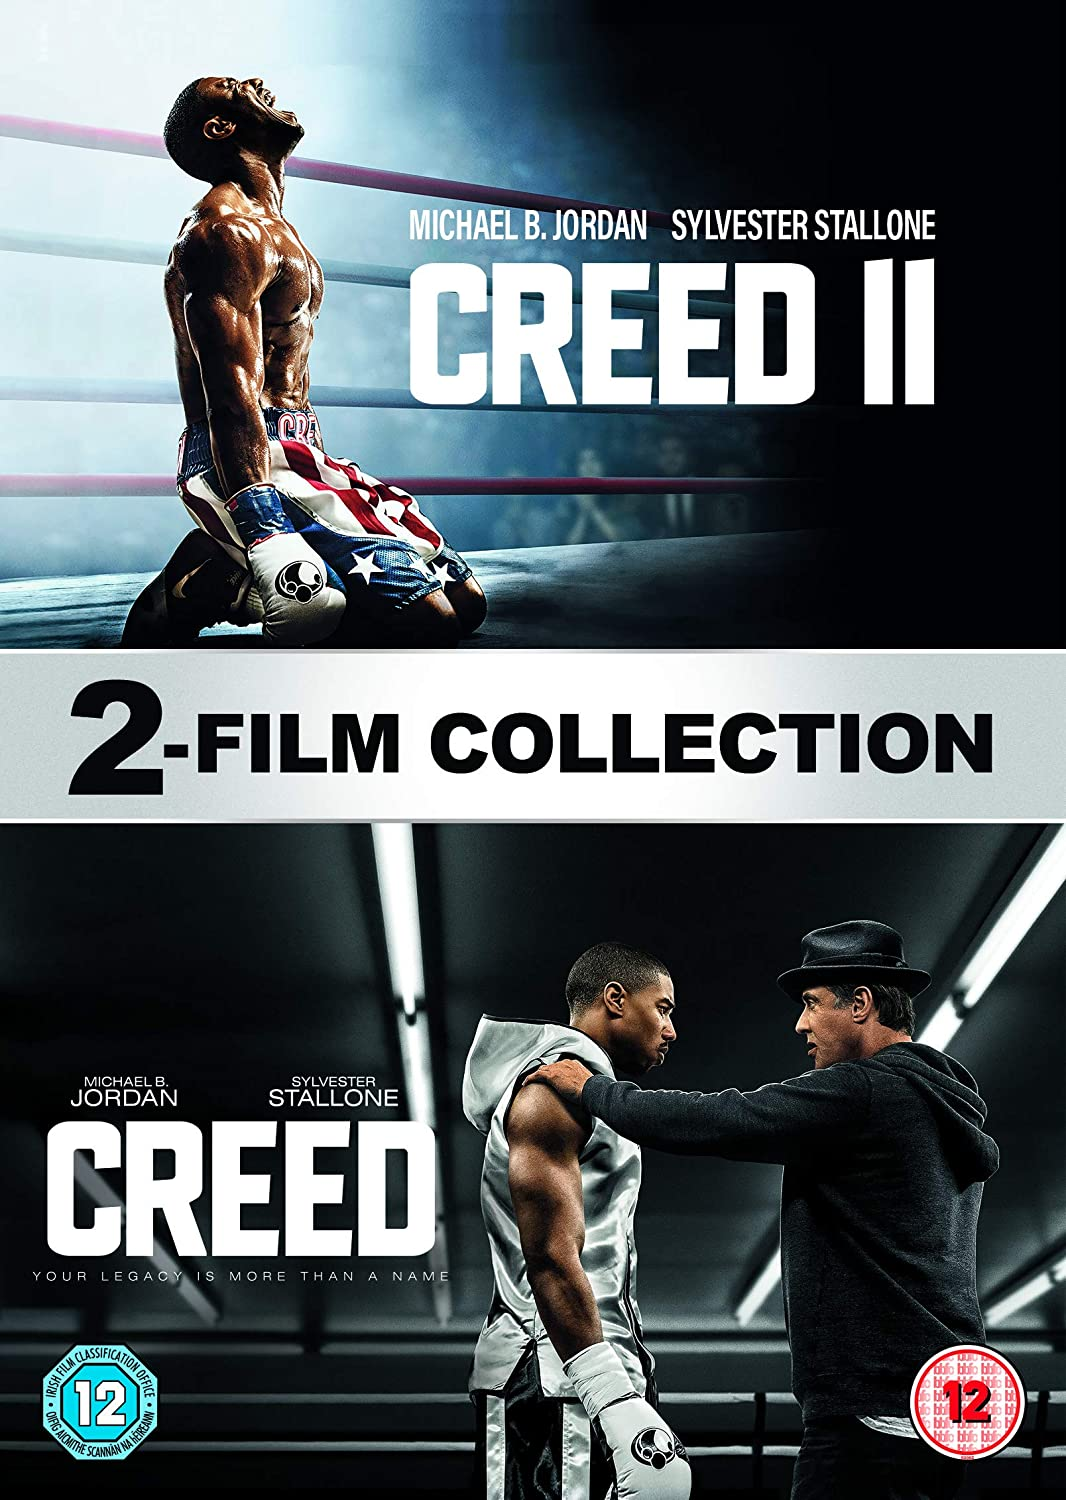 Amazon.com: Creed: 2-Film Collection [DVD] [2018]: Movies & TV